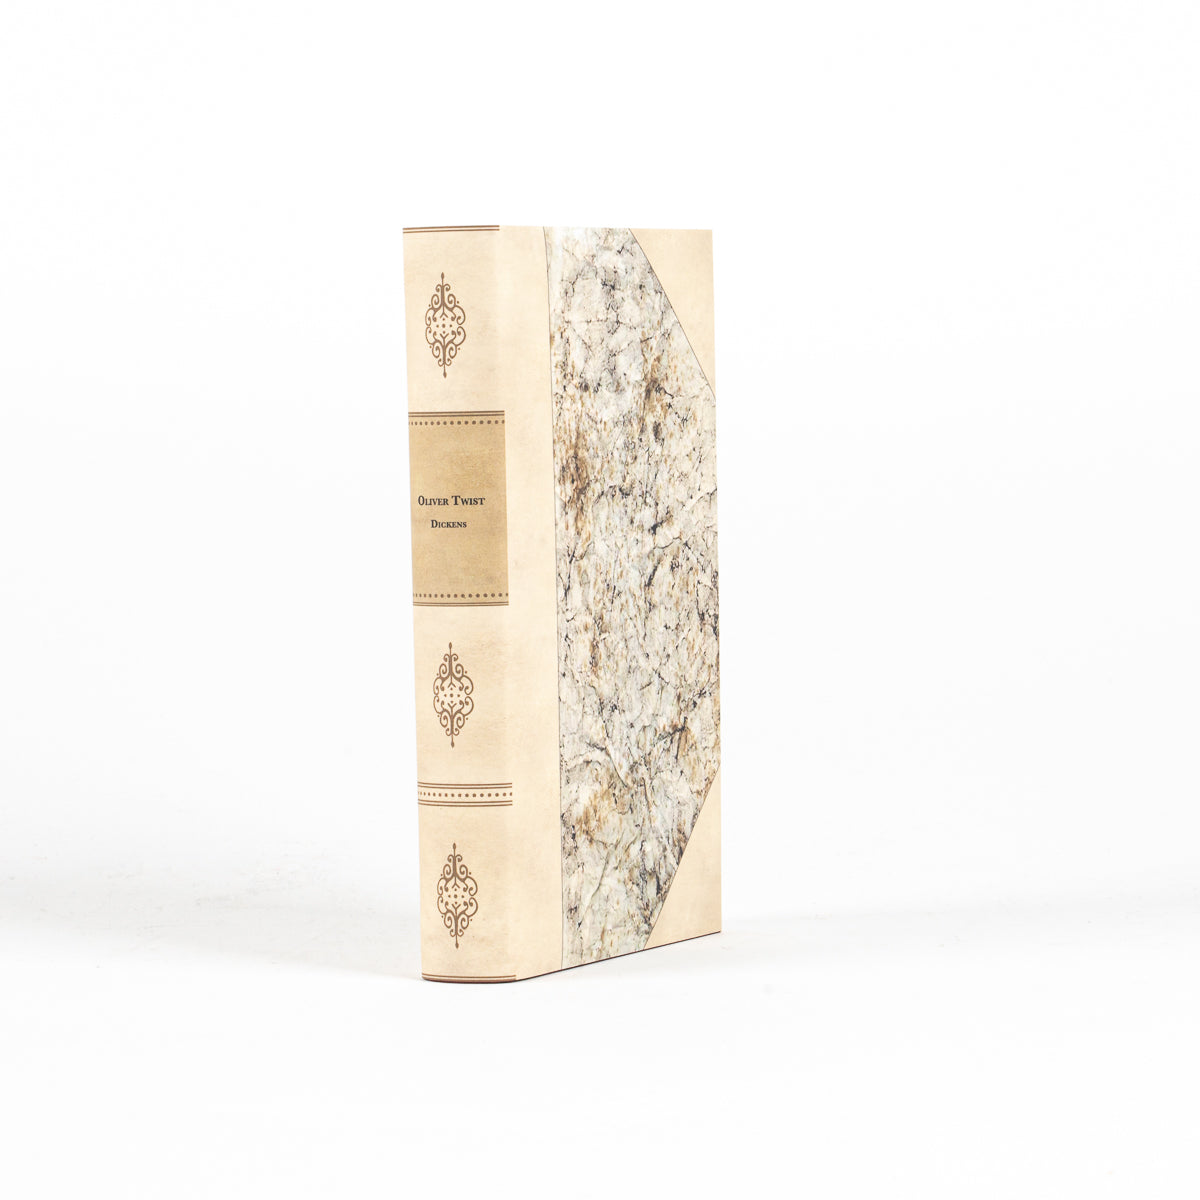 Oliver Twist by Charles Dickens - Vellum Style Jackets